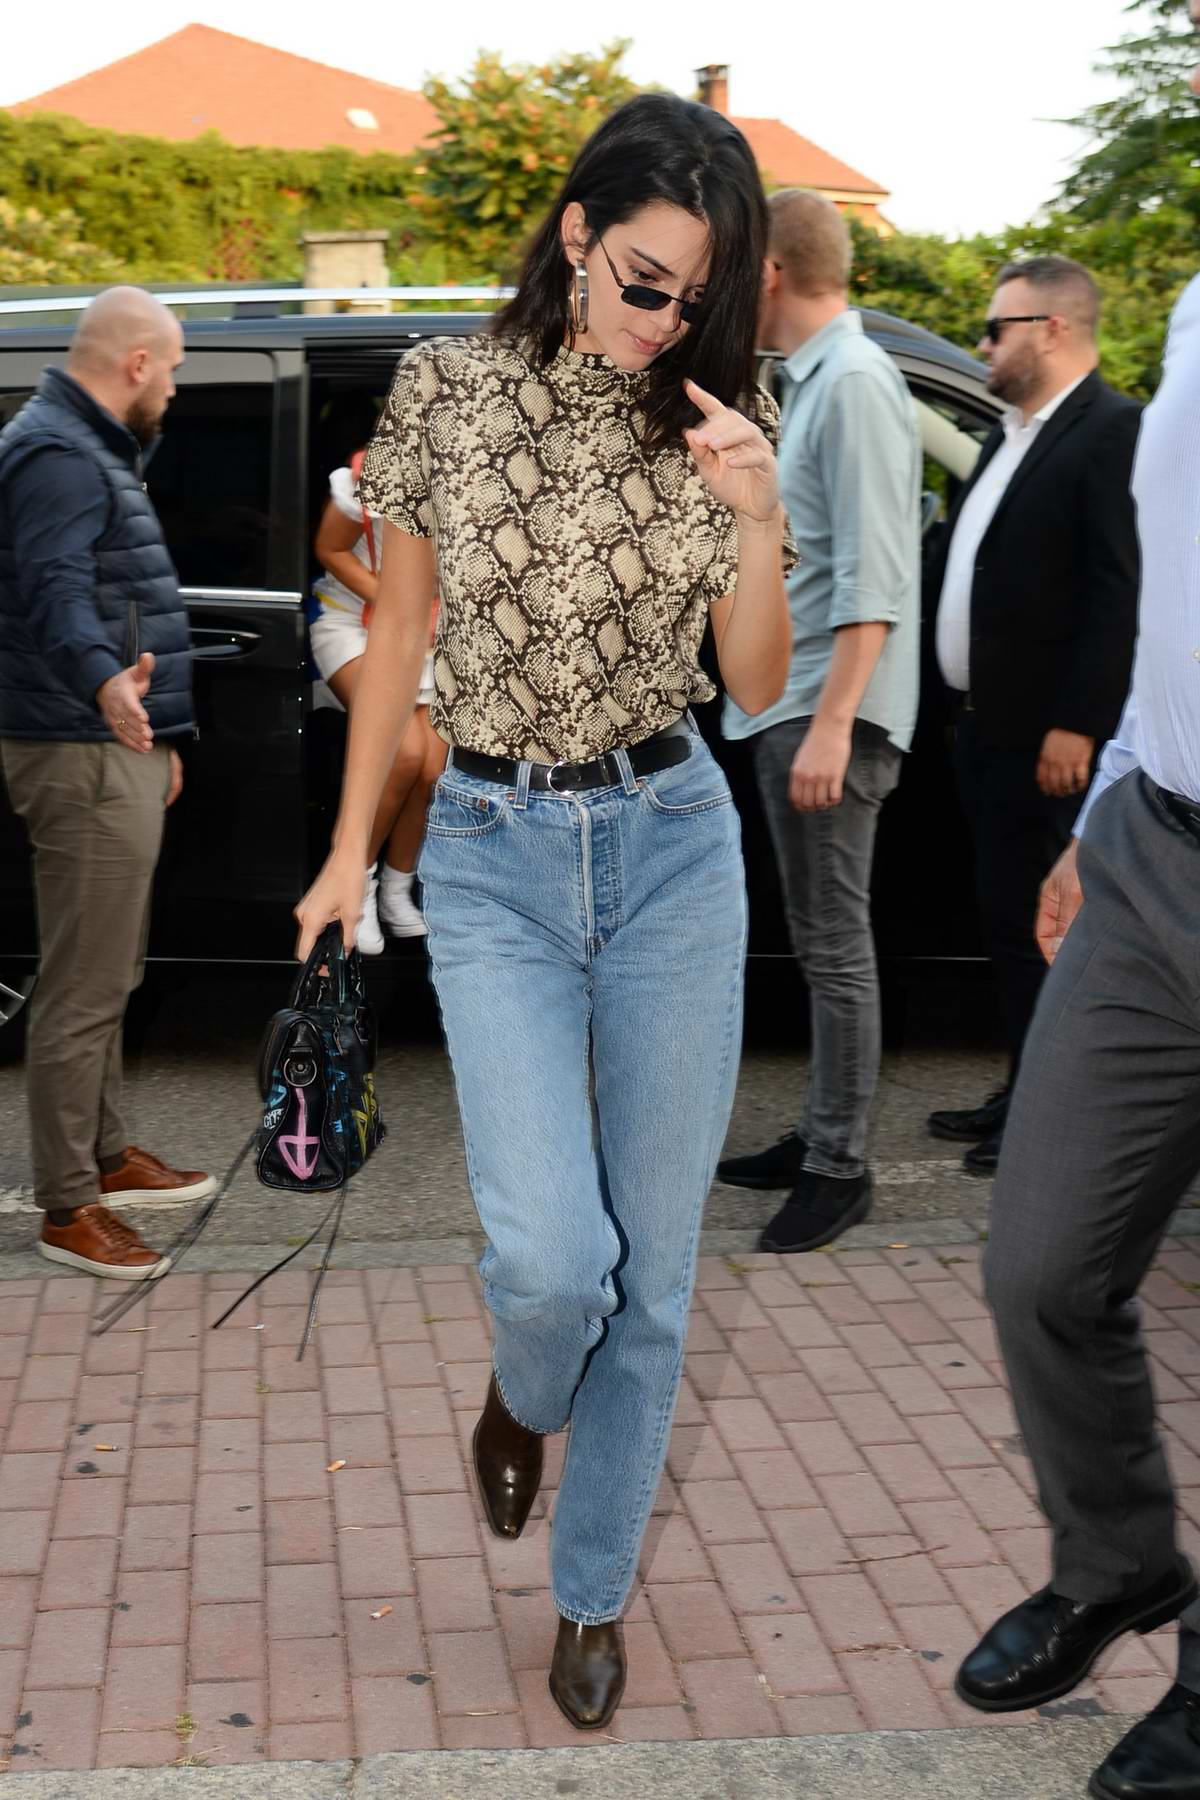 Kendall Jenner rocks a snakeskin print top and jeans while ...